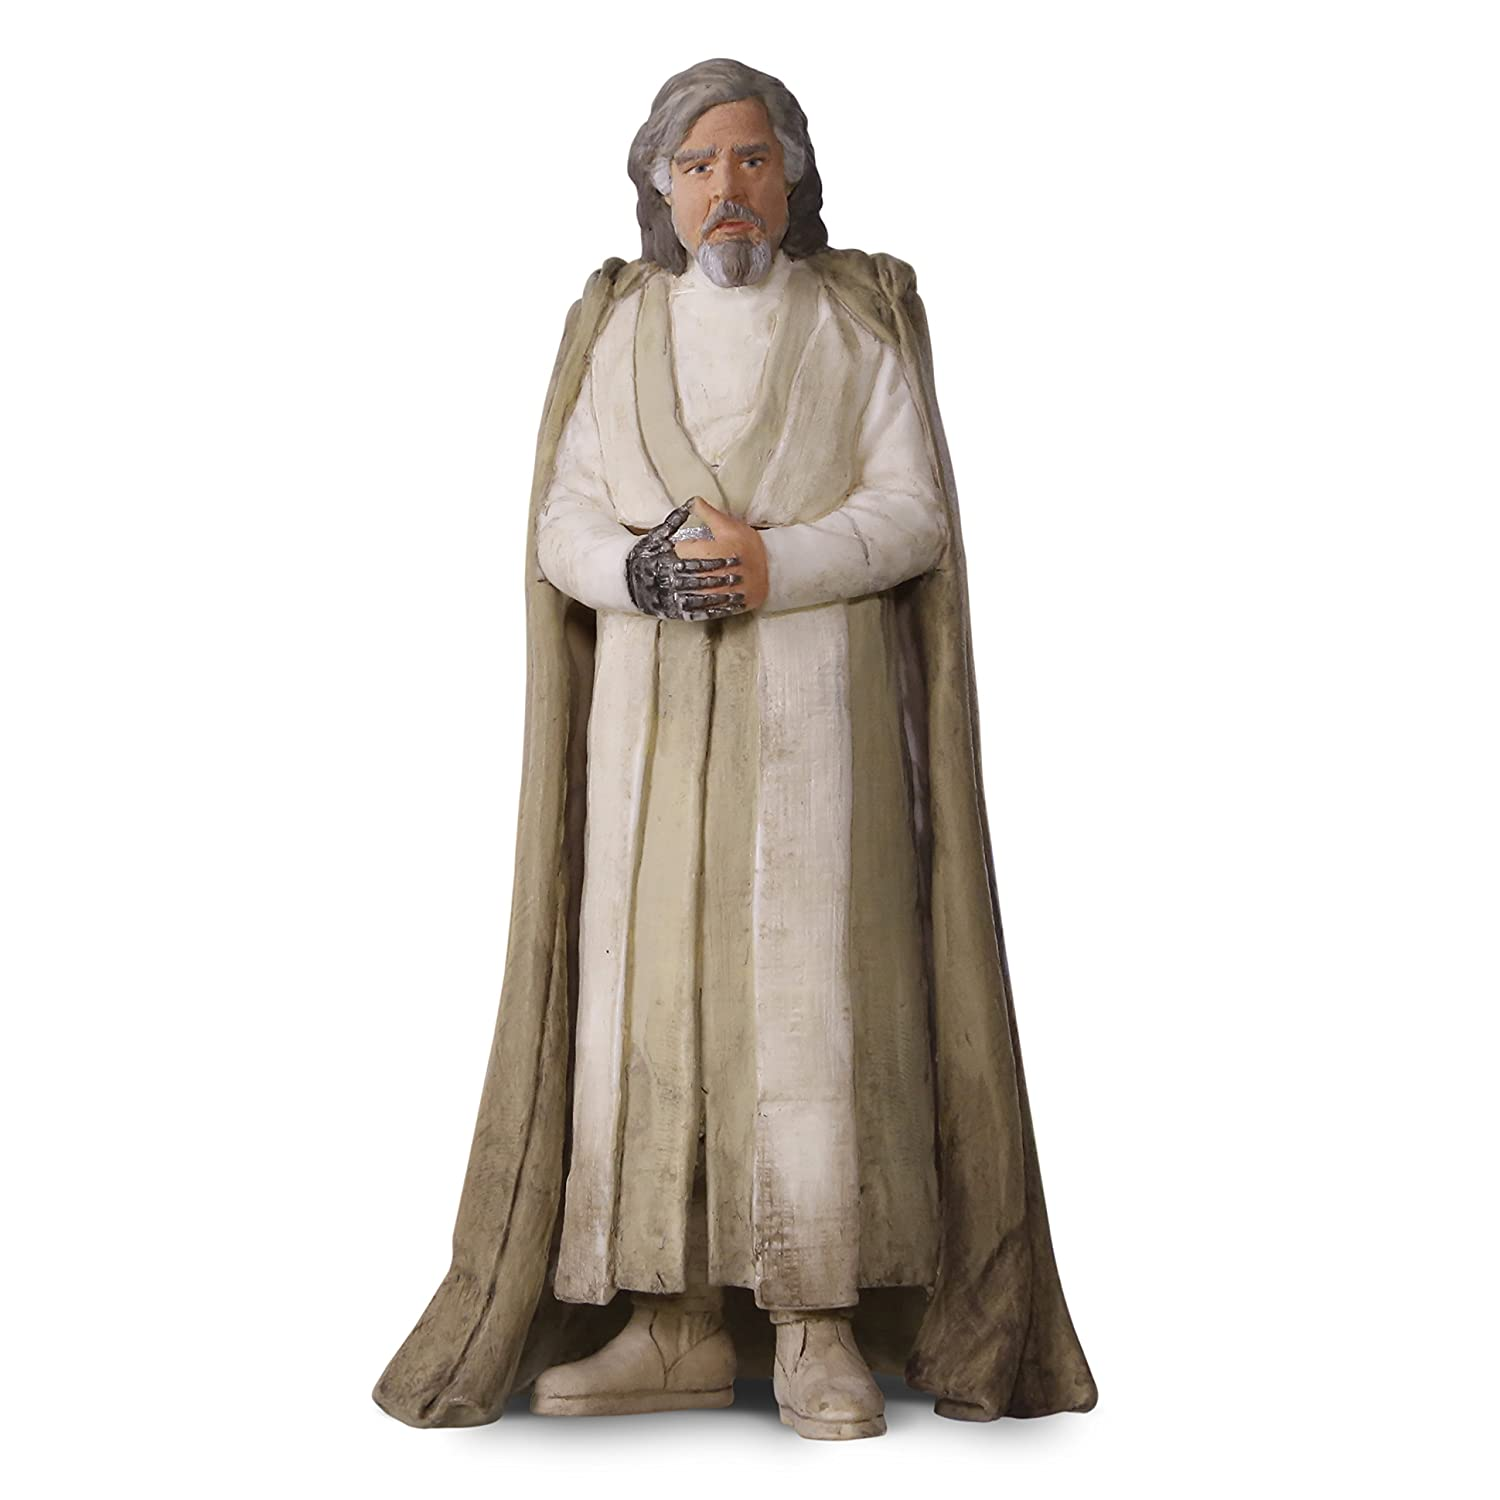 Hallmark Keepsake 2017 Star Wars: The Force Awakens Luke Skywalker Christmas Orn